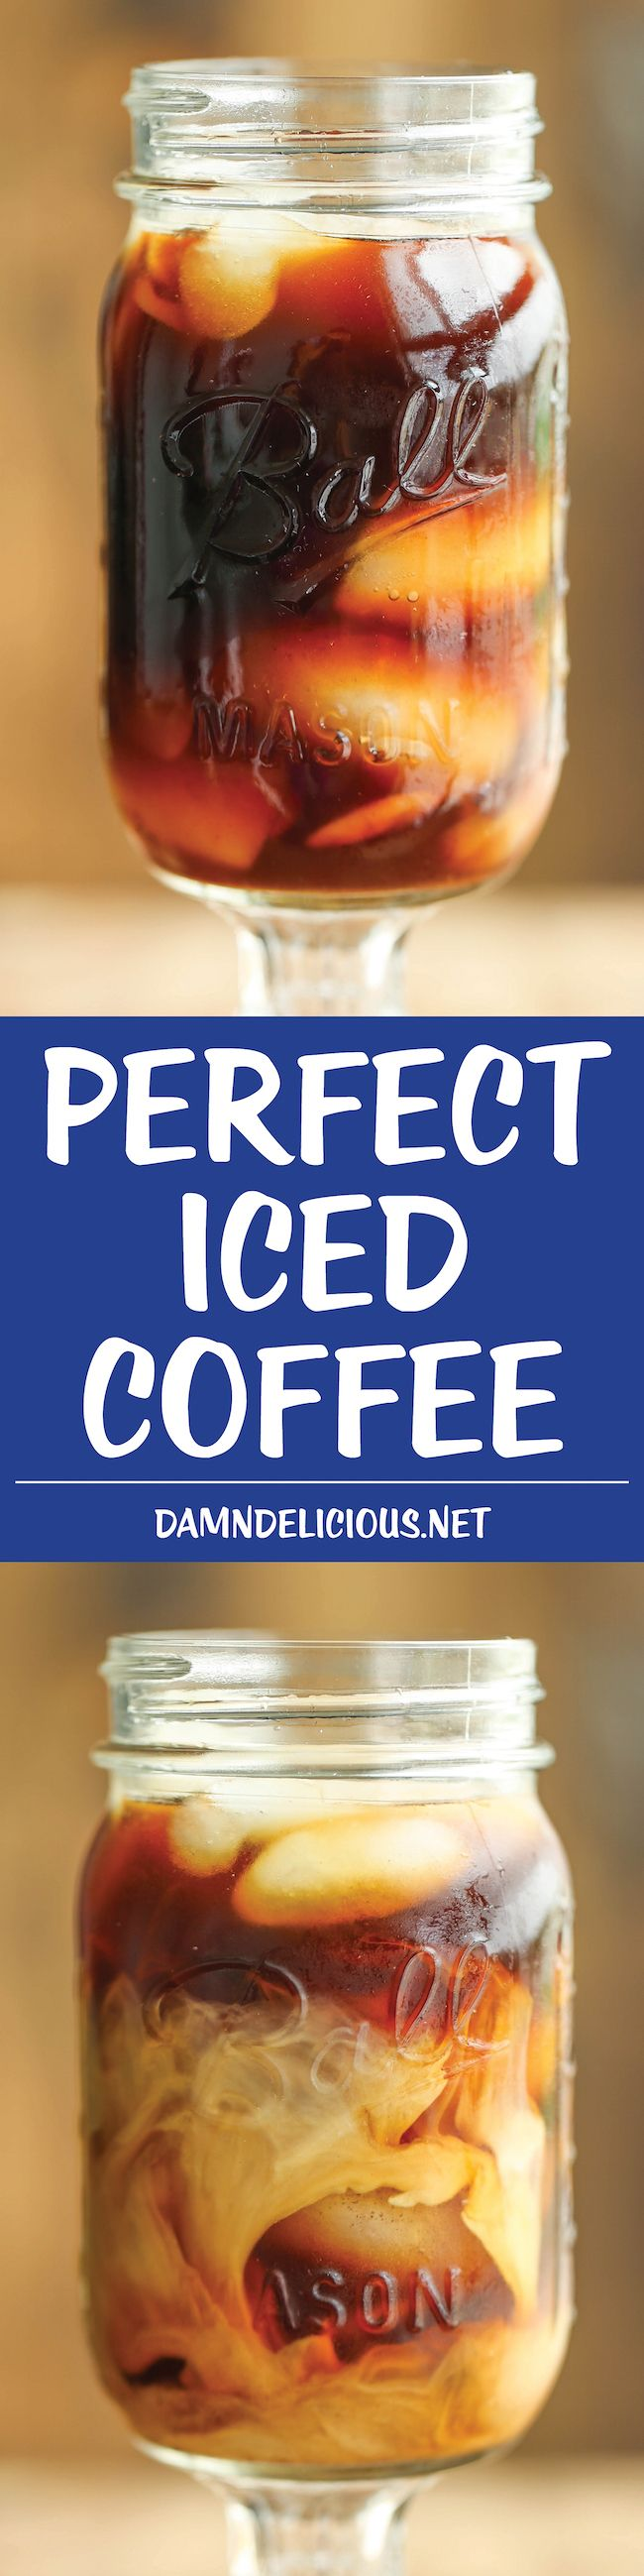 Perfect Iced Coffee - This recipe is quick, easy, budget-friendly, and tastes just like the gourmet coffee-shops, if not better!